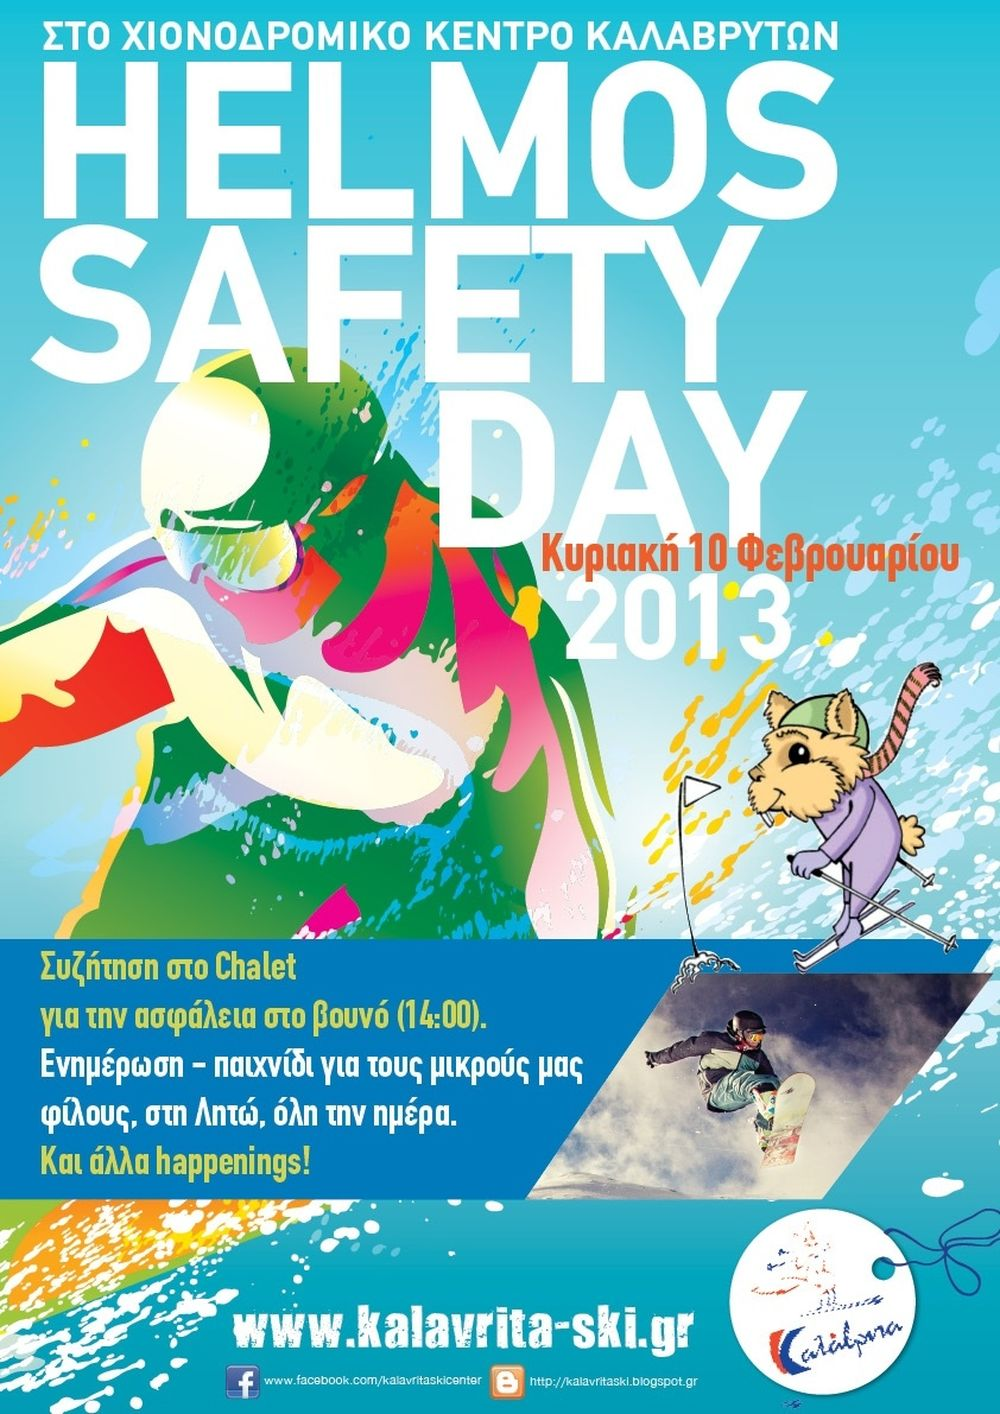 HELMOS SAFETY DAY 2013!